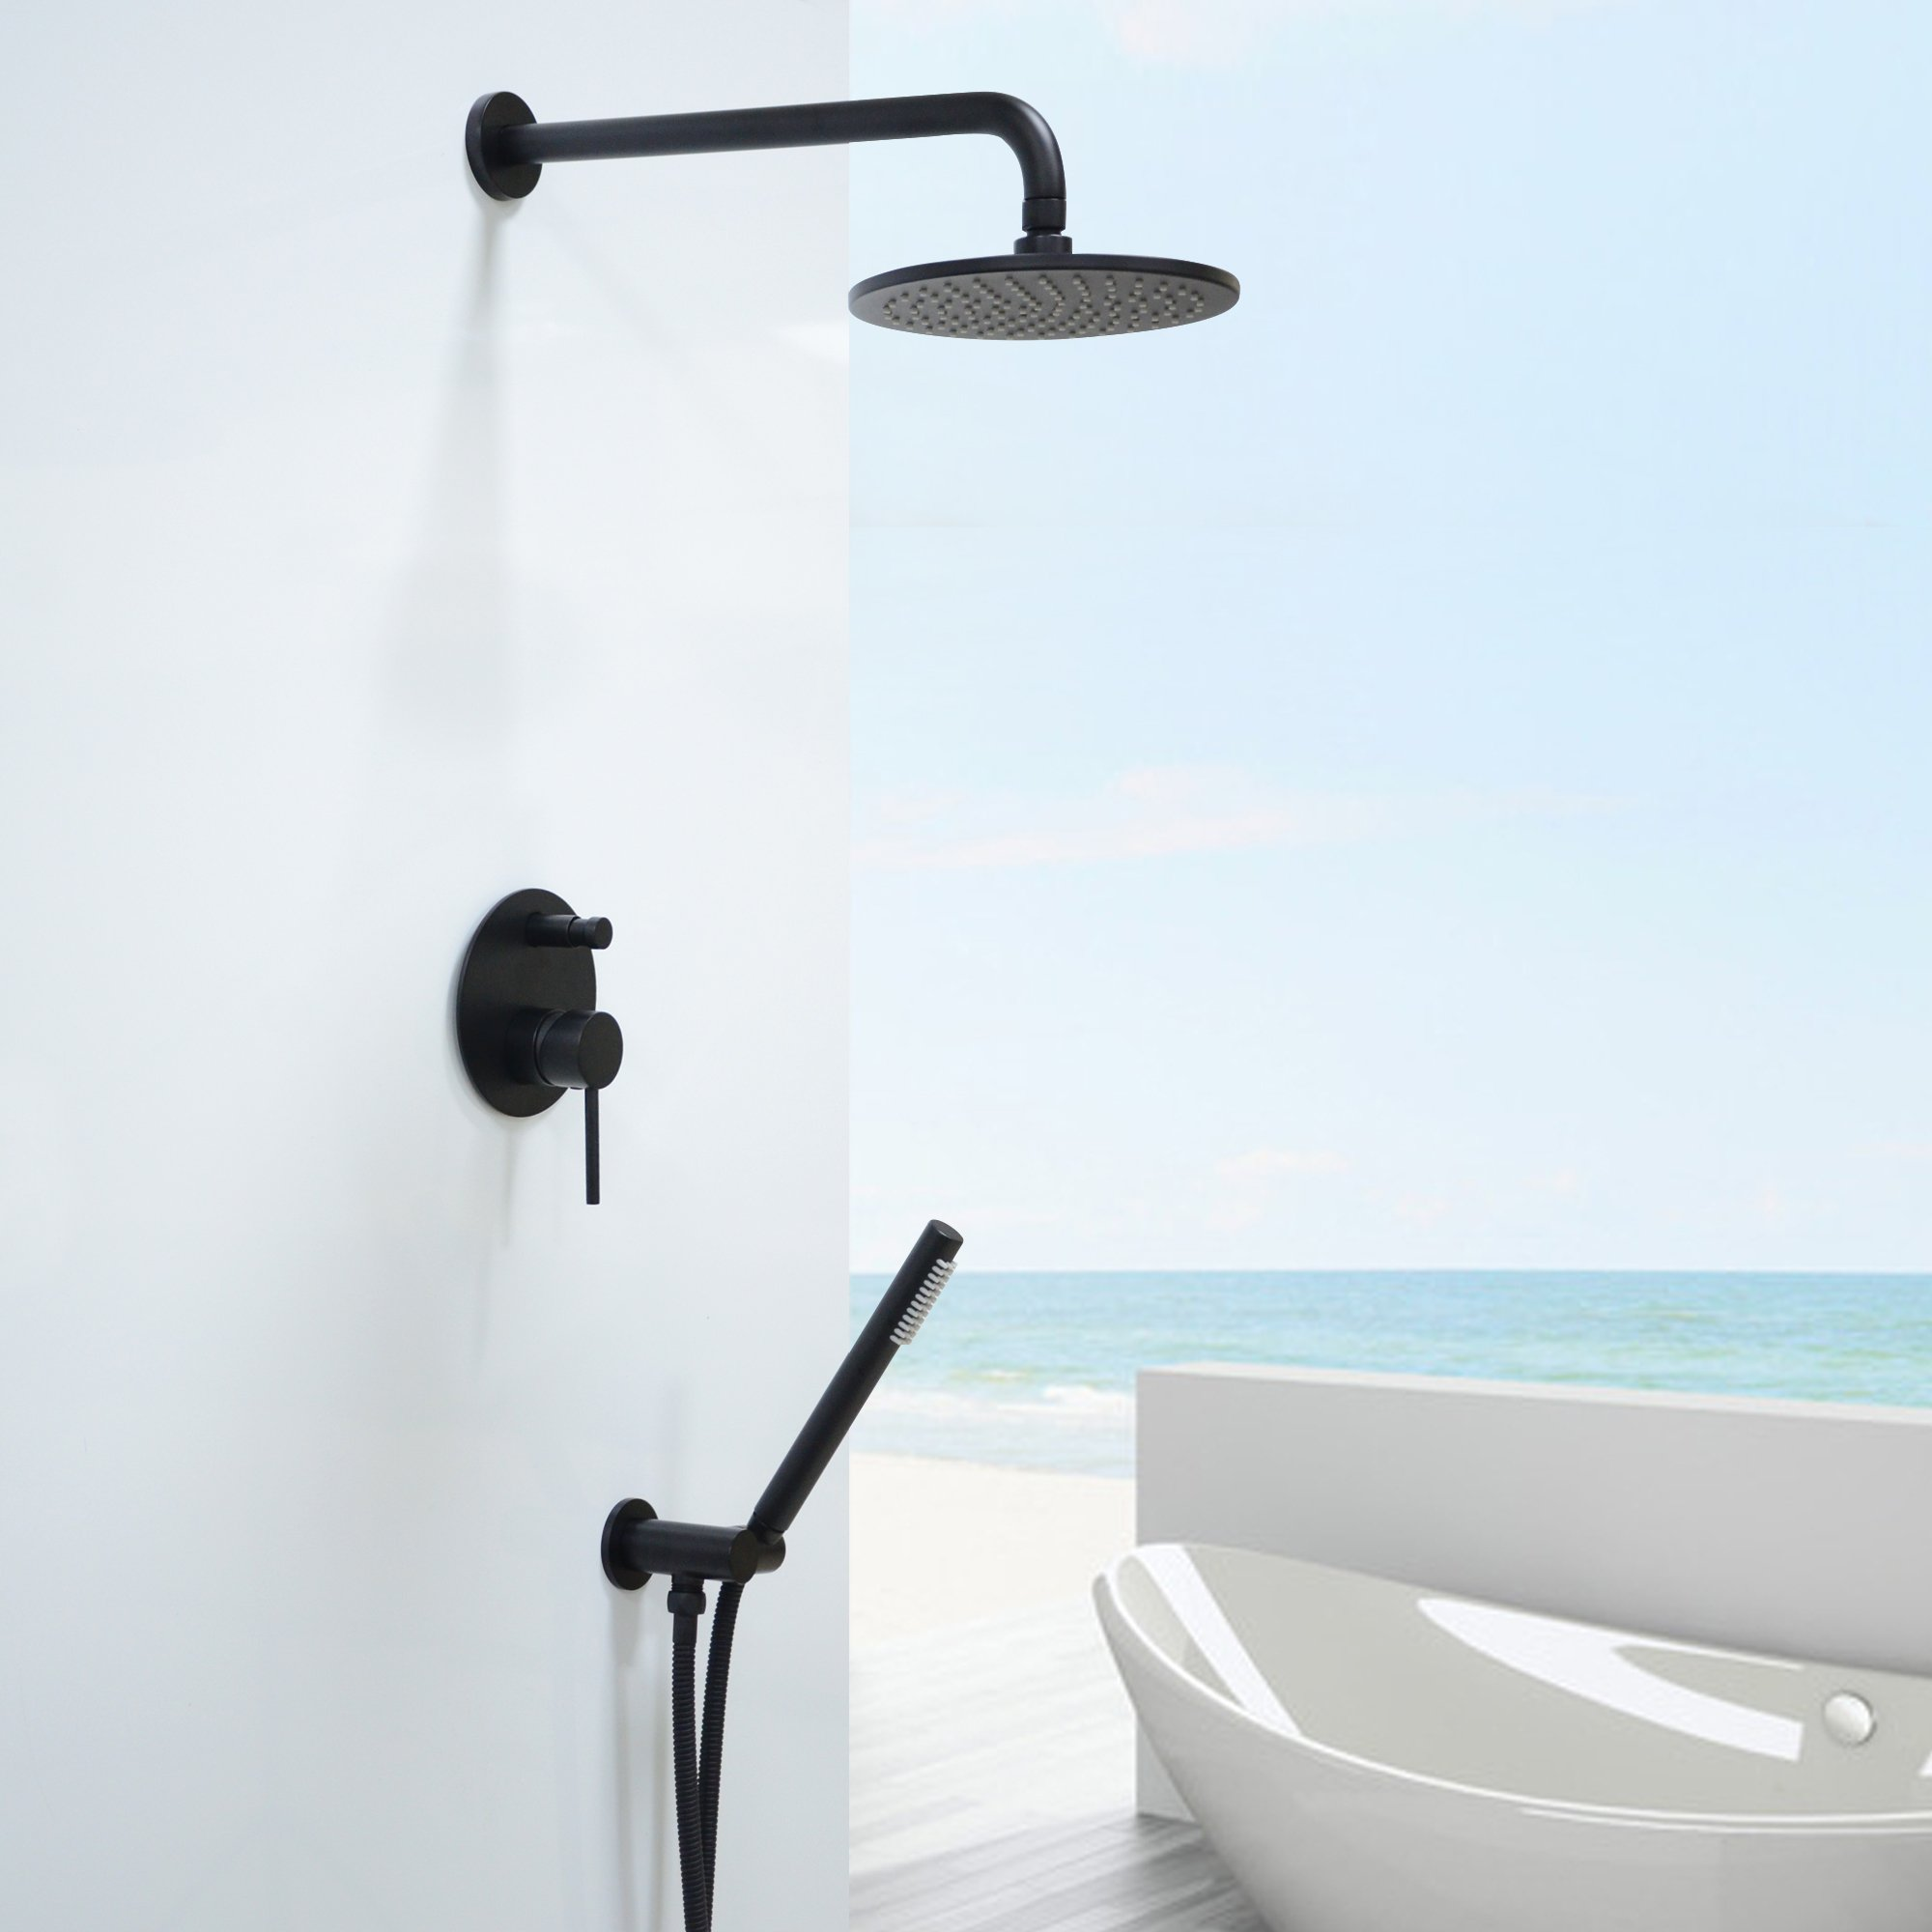 Luxury Oil Rubbed Bronze Black Bath Shower Faucet Set 8'' Rain Shower Head + Hand Shower Spray by Sprinkle (Image #4)